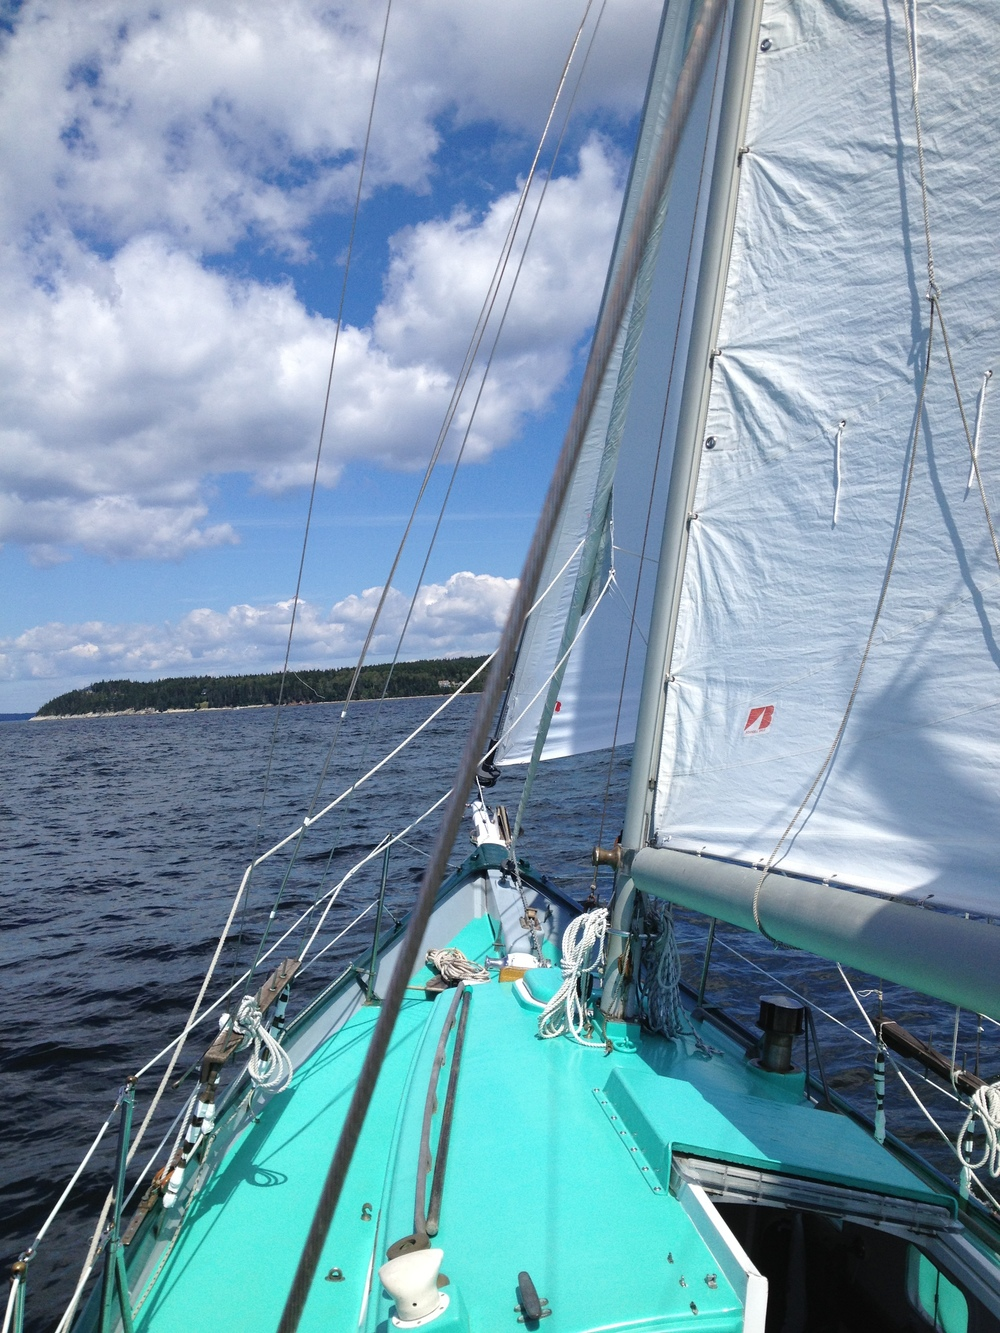 And we're finally under sail!